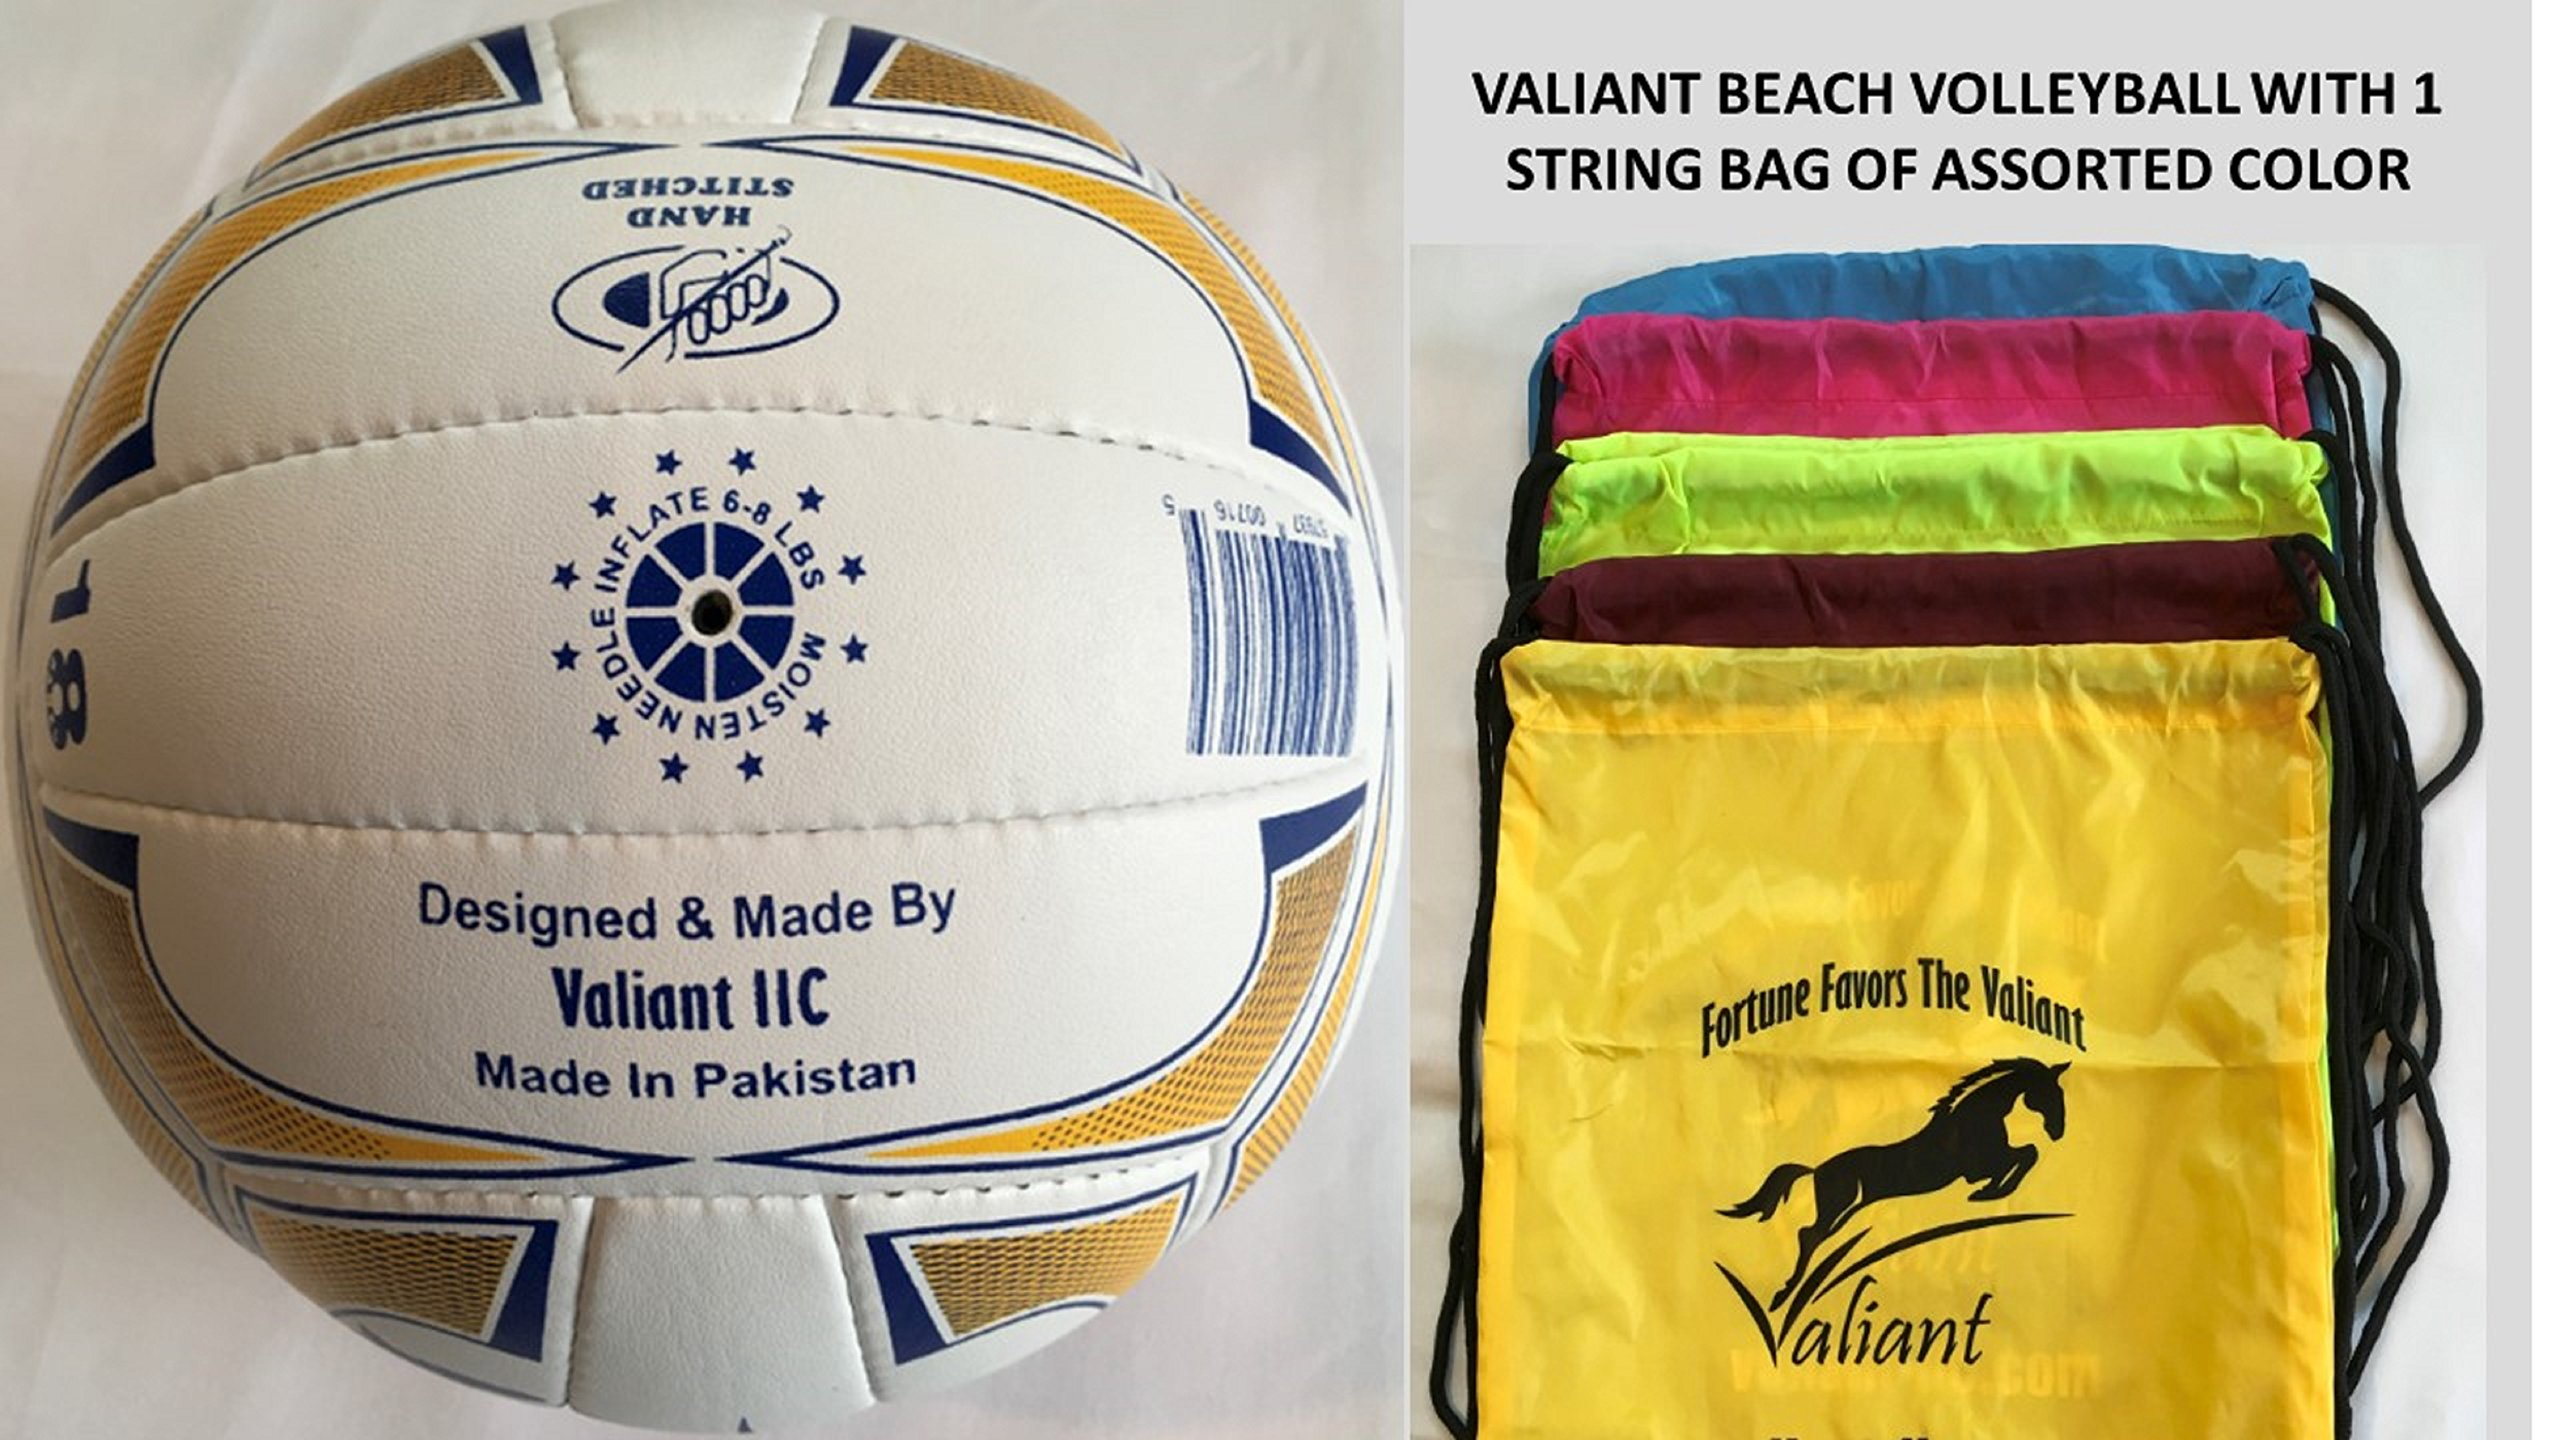 Valiant Beach Volleyball Official Hand Sewn (VV-USA-100) Outdoor Game Tournament String Bag